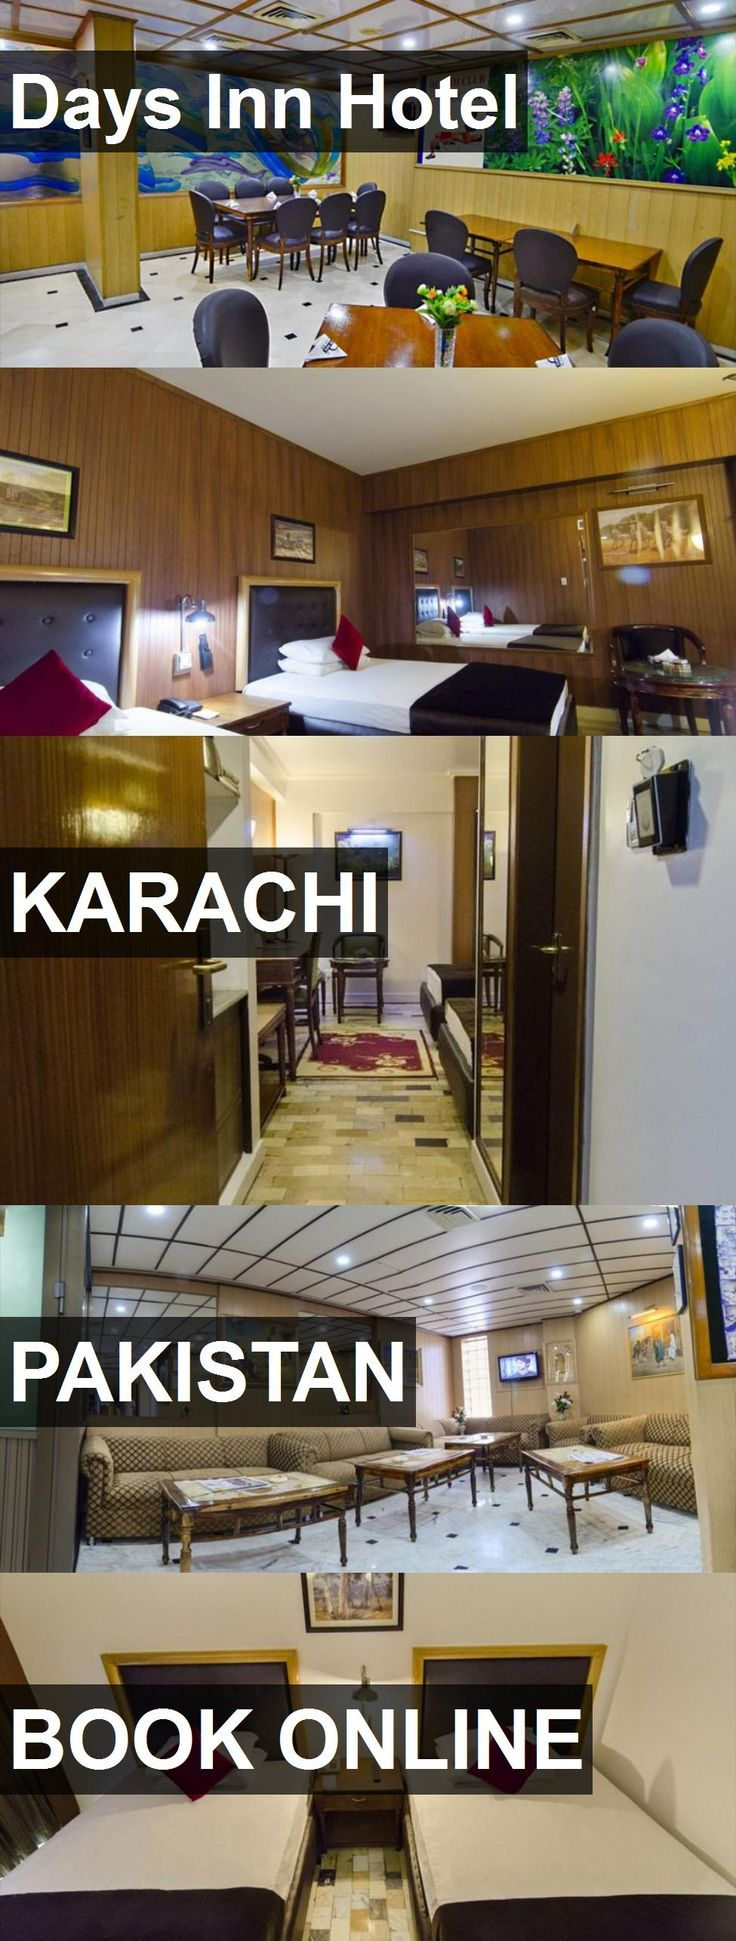 Days Inn Hotel in Karachi, Pakistan. For more information, photos, reviews and best prices please follow the link. #Pakistan #Karachi #travel #vacation #hotel